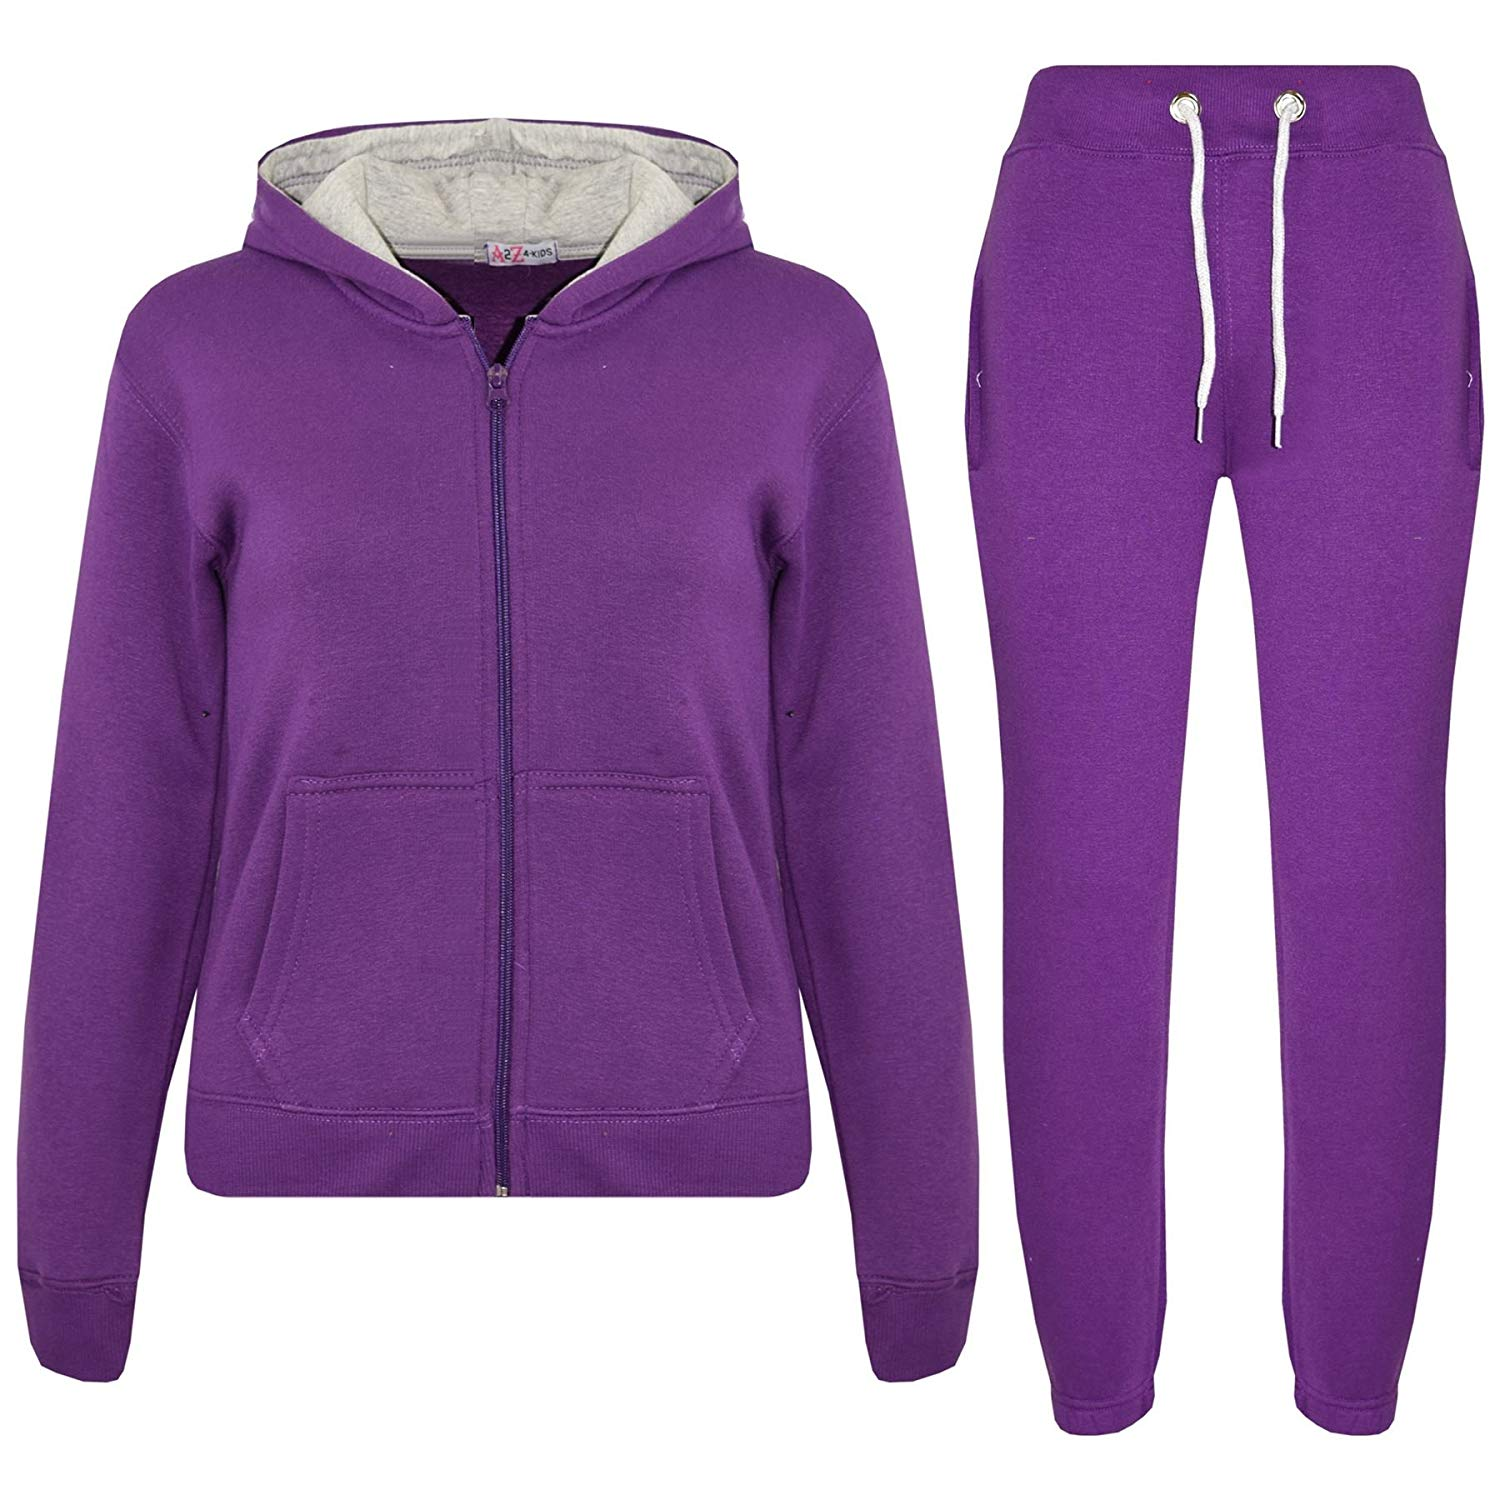 A2Z 4 Kids® Kids Tracksuit Girls Boys Fleece Hooded Hoodie Bottom Jogging Suit Jogger 5-13Yr